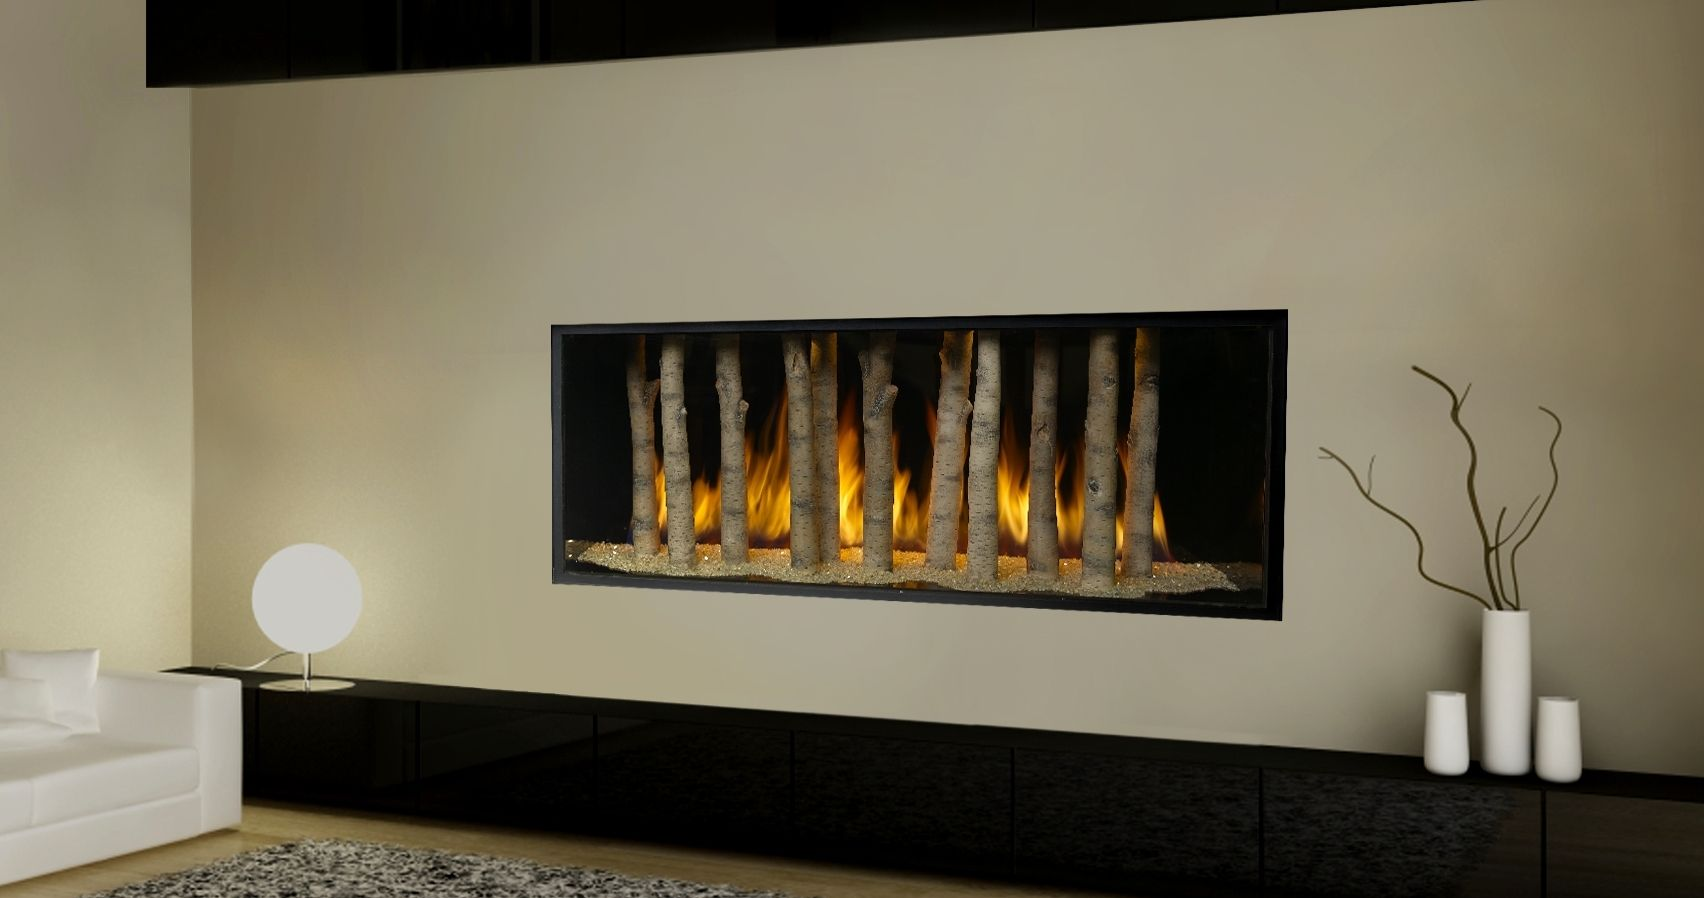 Unique gas fireplace design ideas with creative fireplace Hide fireplace ideas